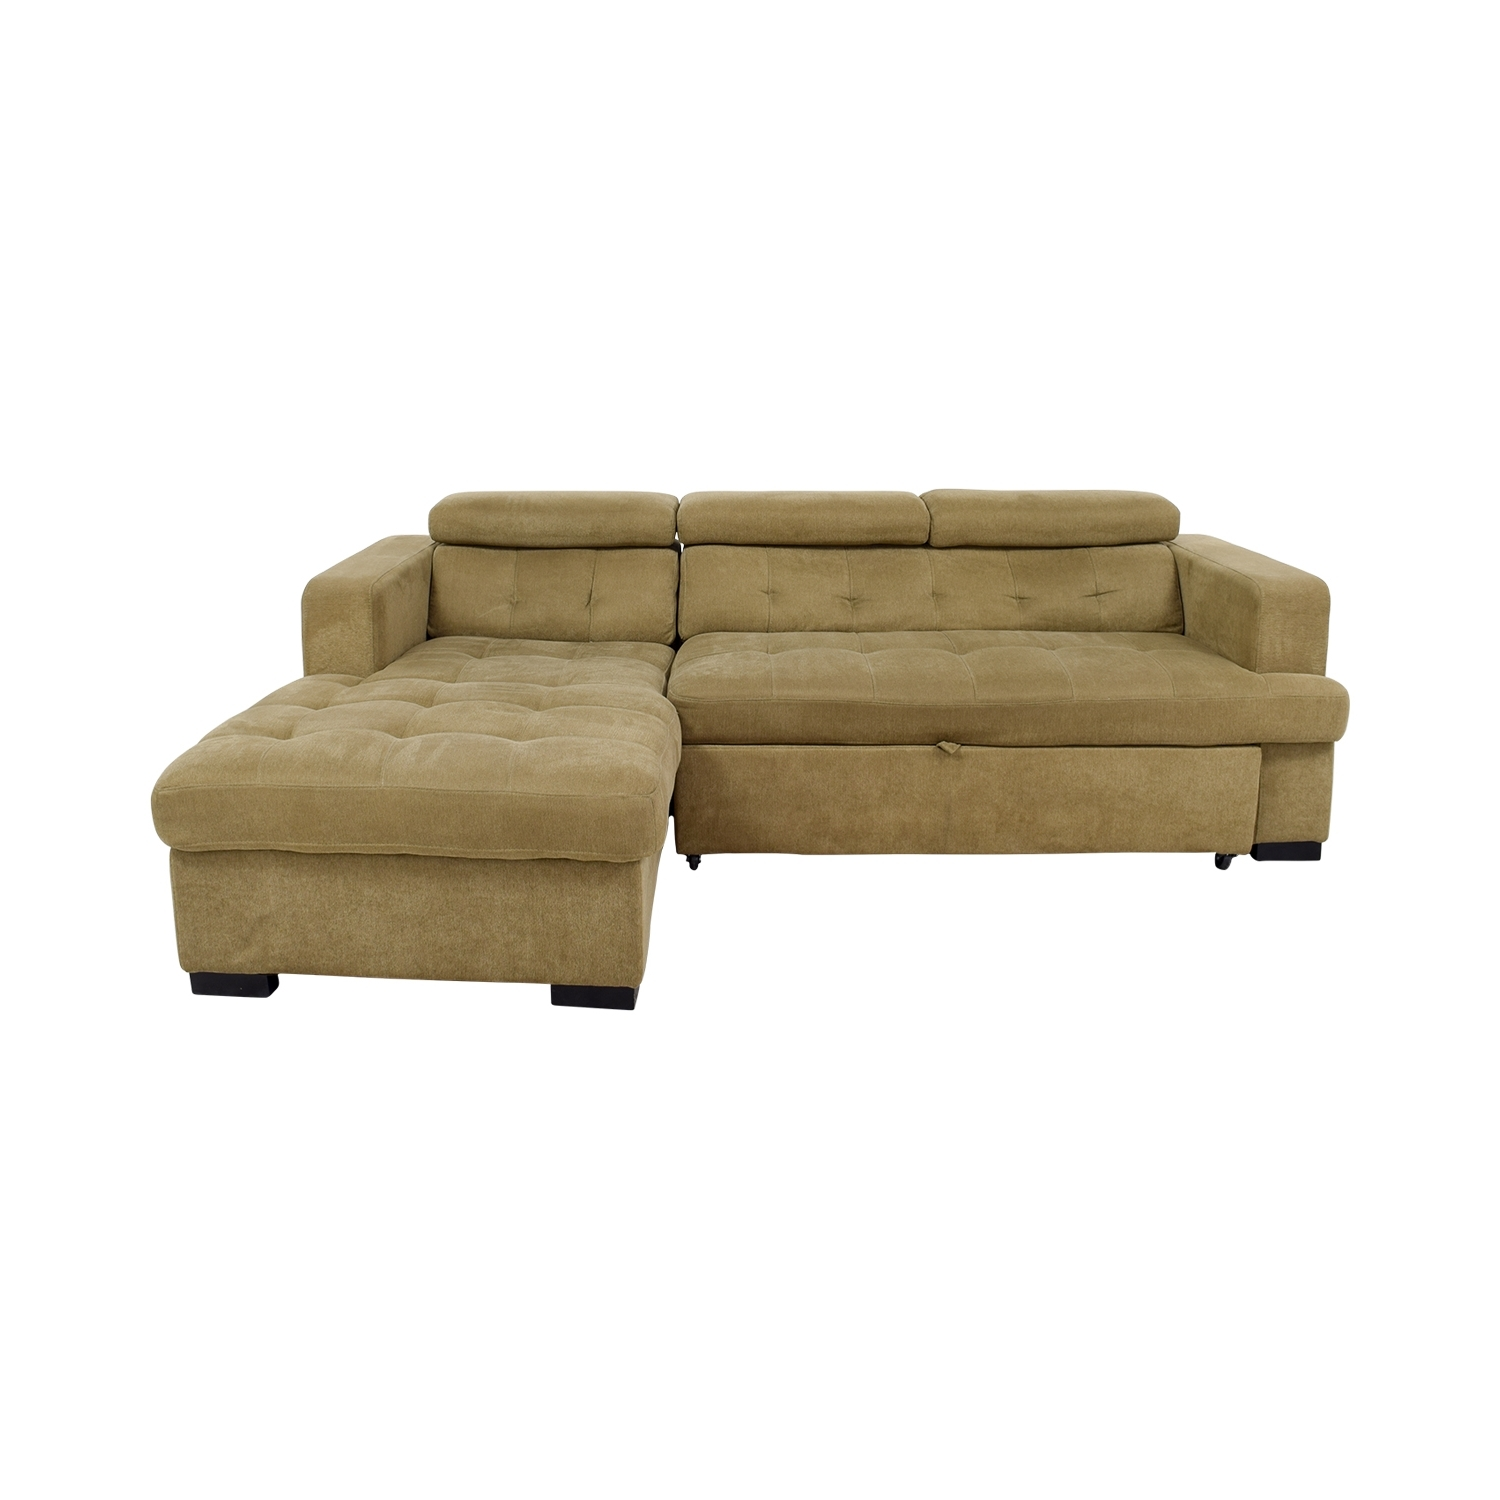 [%59% Off – Bob's Furniture Bob's Furniture Gold Chaise Sectional Intended For Well Liked Sleeper Chaise Sofas|Sleeper Chaise Sofas For Widely Used 59% Off – Bob's Furniture Bob's Furniture Gold Chaise Sectional|Most Recent Sleeper Chaise Sofas Inside 59% Off – Bob's Furniture Bob's Furniture Gold Chaise Sectional|Well Liked 59% Off – Bob's Furniture Bob's Furniture Gold Chaise Sectional Within Sleeper Chaise Sofas%] (View 1 of 15)